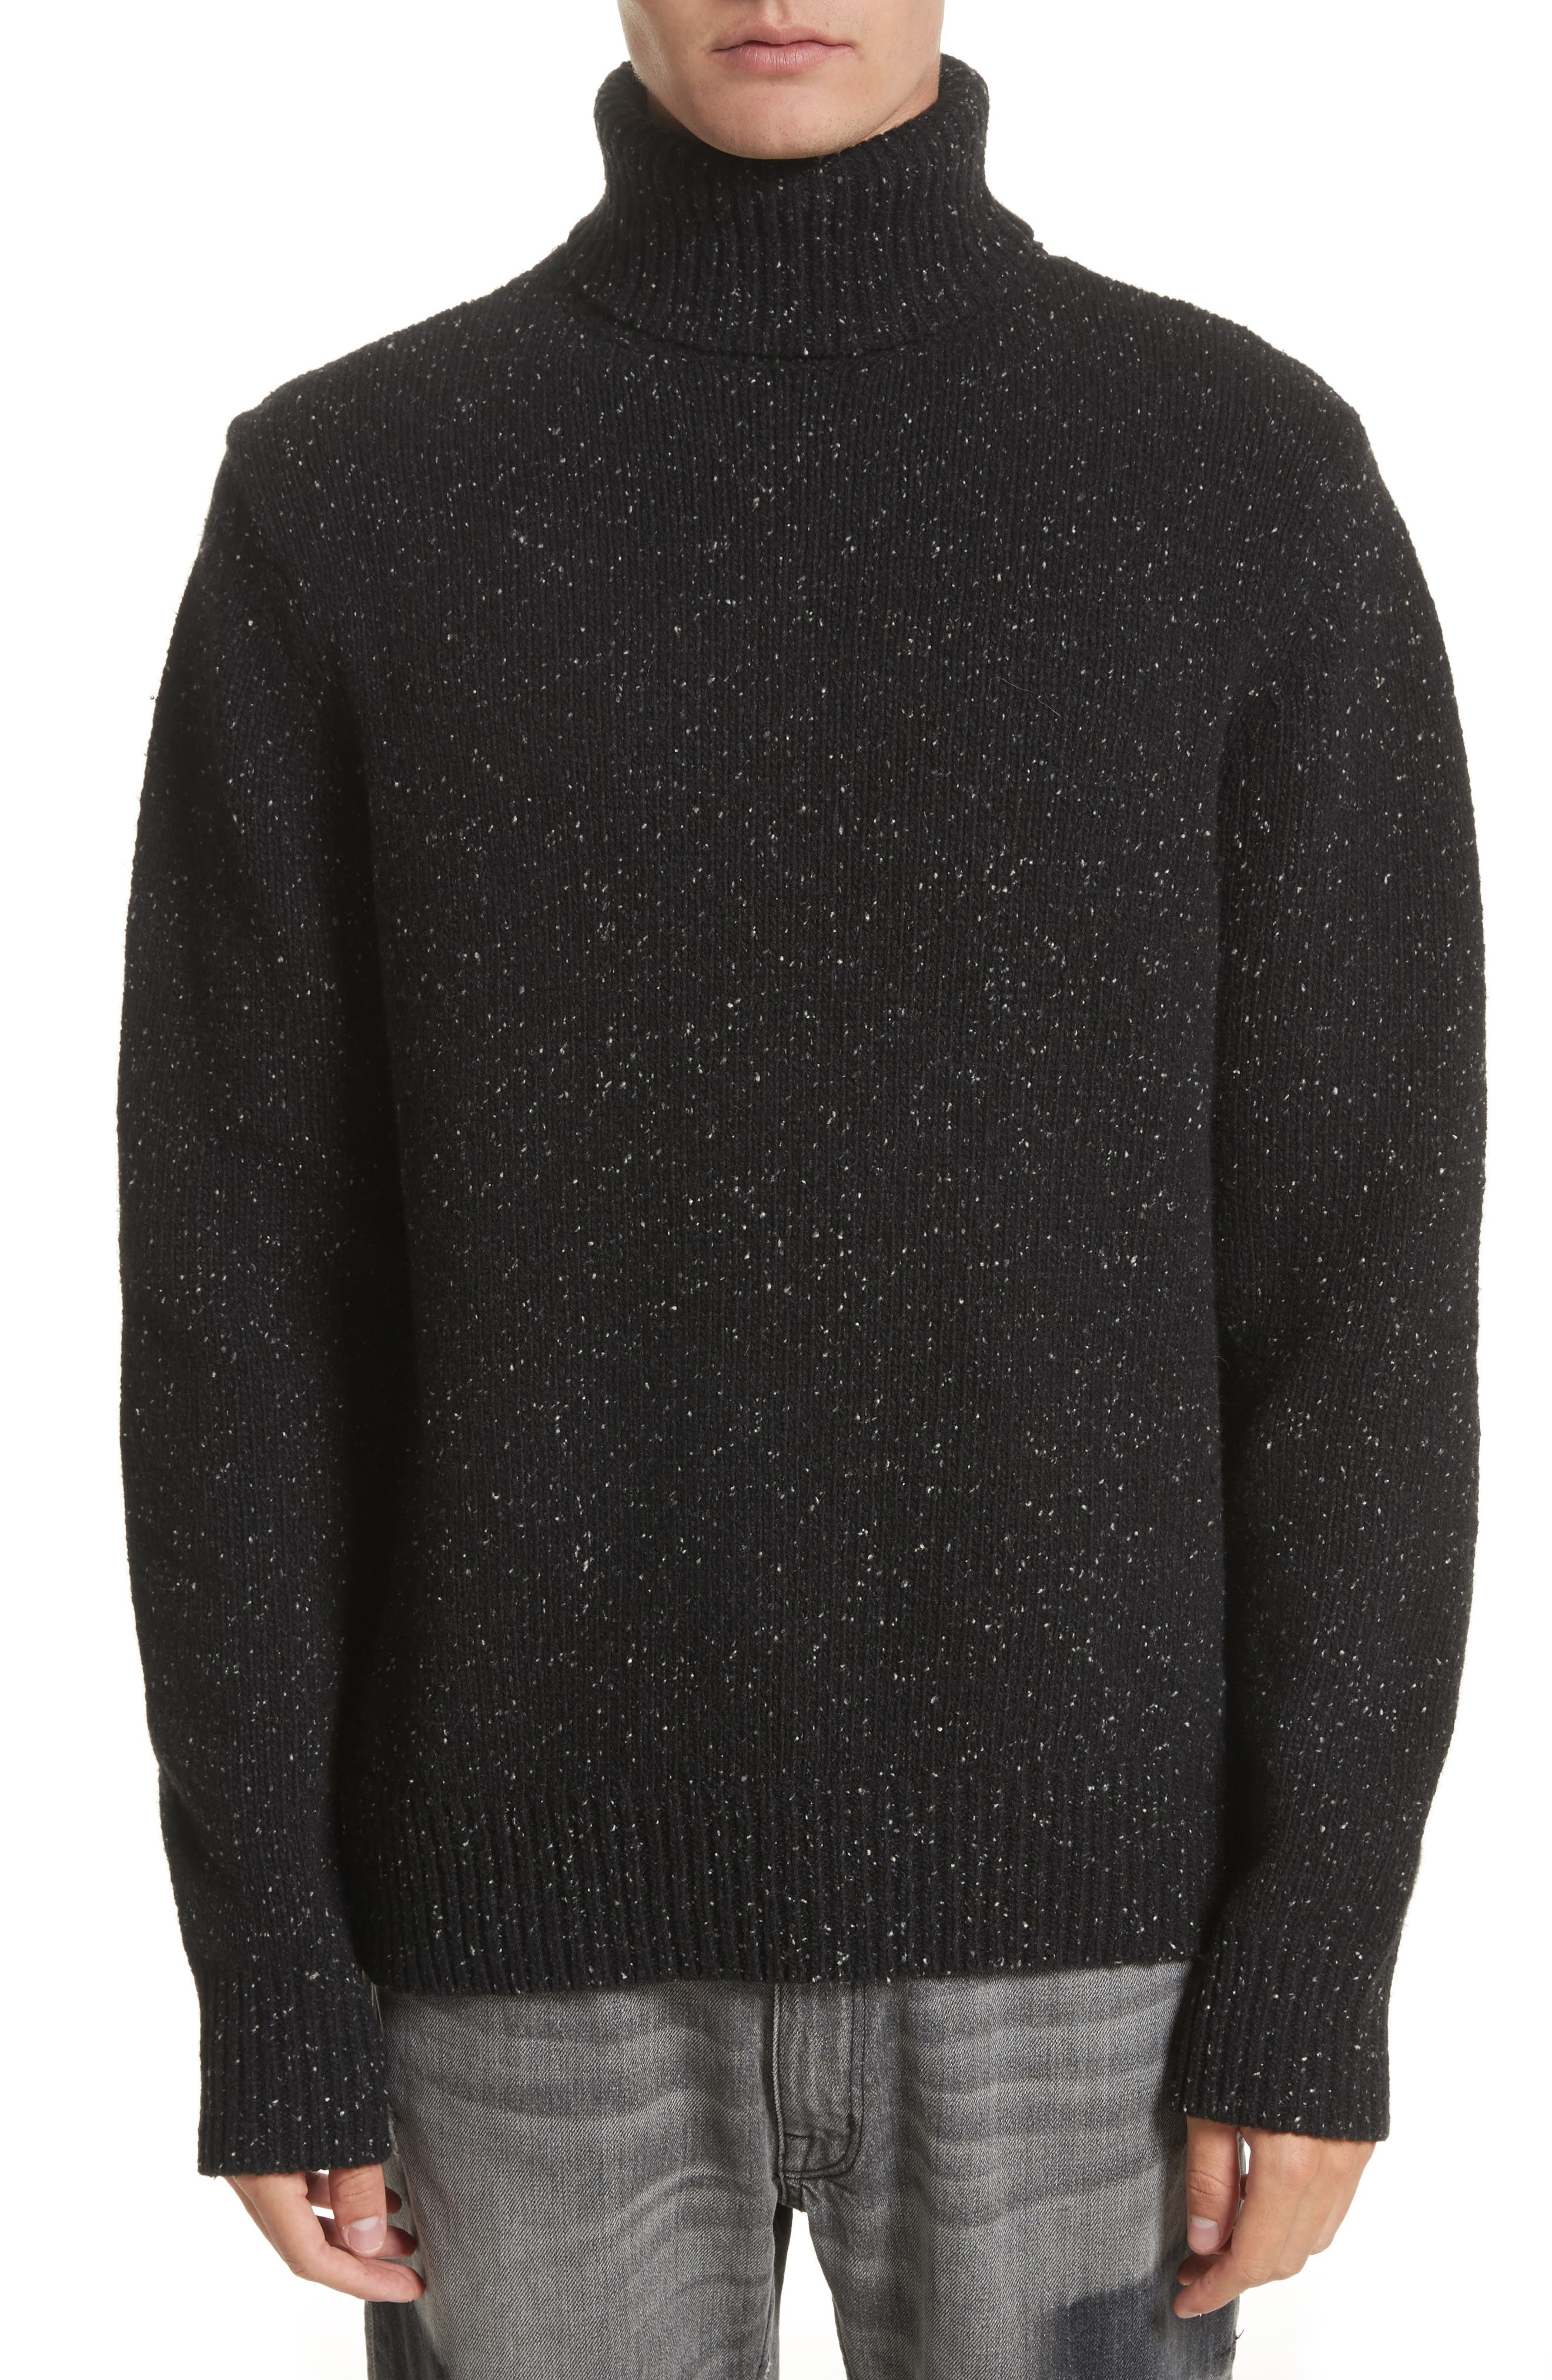 OVADIA & SONS Turtleneck Sweater